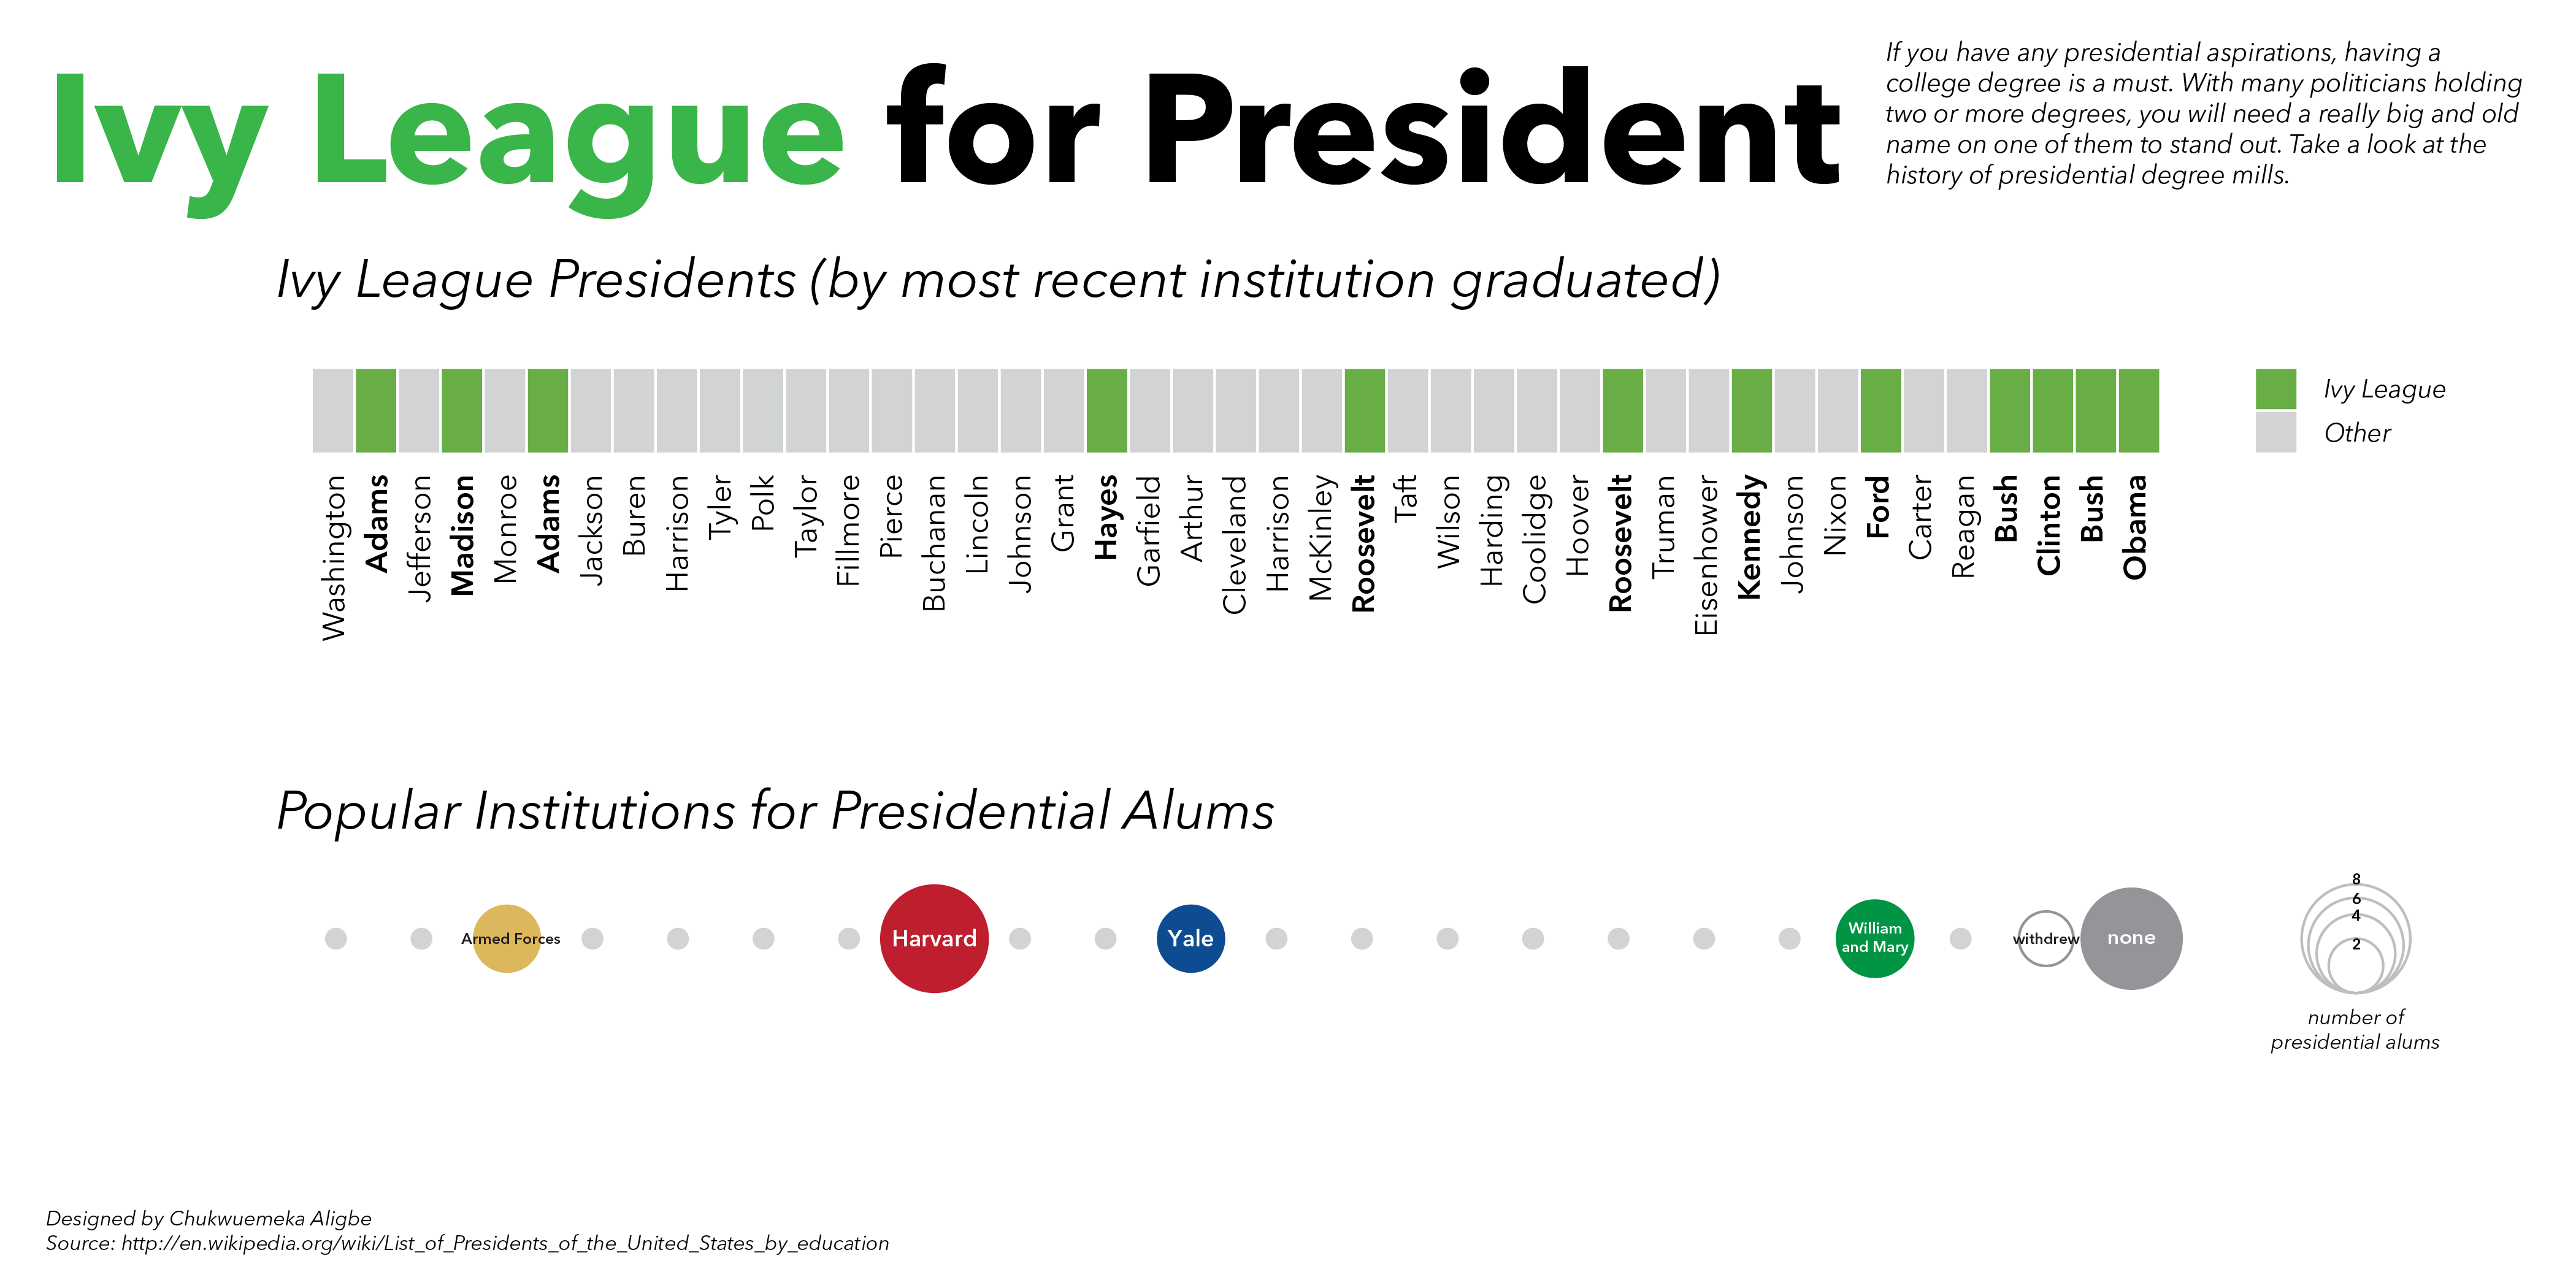 Ivy League for President